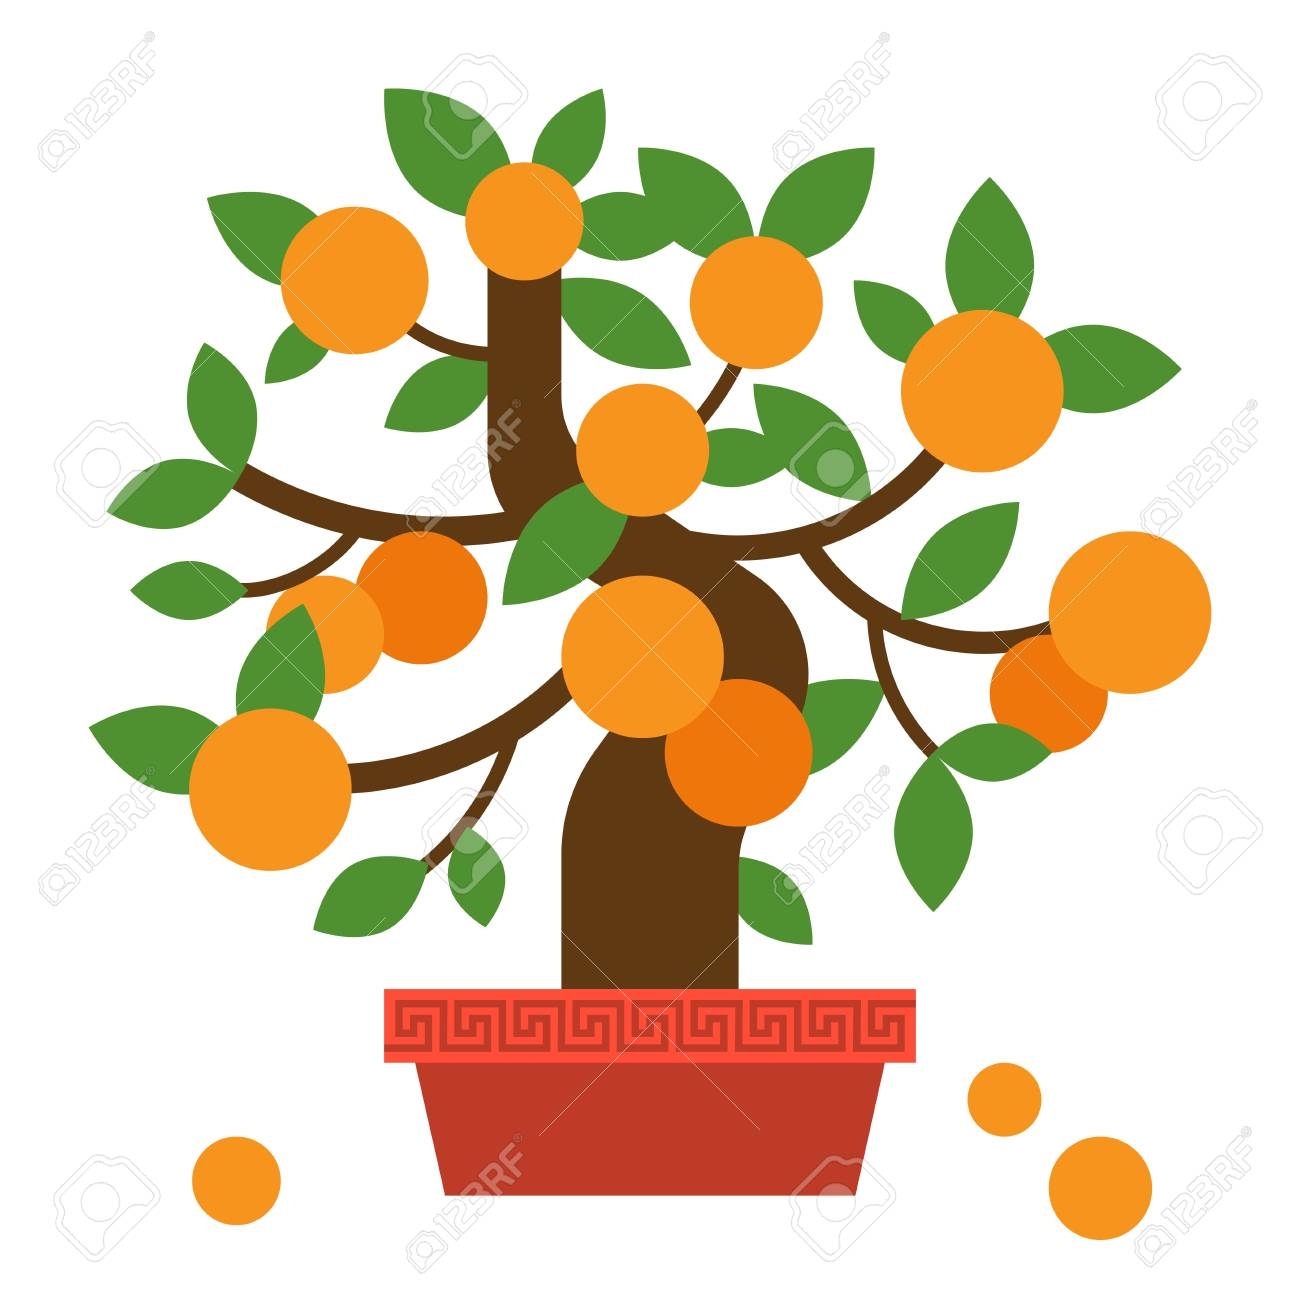 chinese orange bonsai tree flat design for lunar new year royalty free cliparts vectors and stock illustration image 94822322 chinese orange bonsai tree flat design for lunar new year